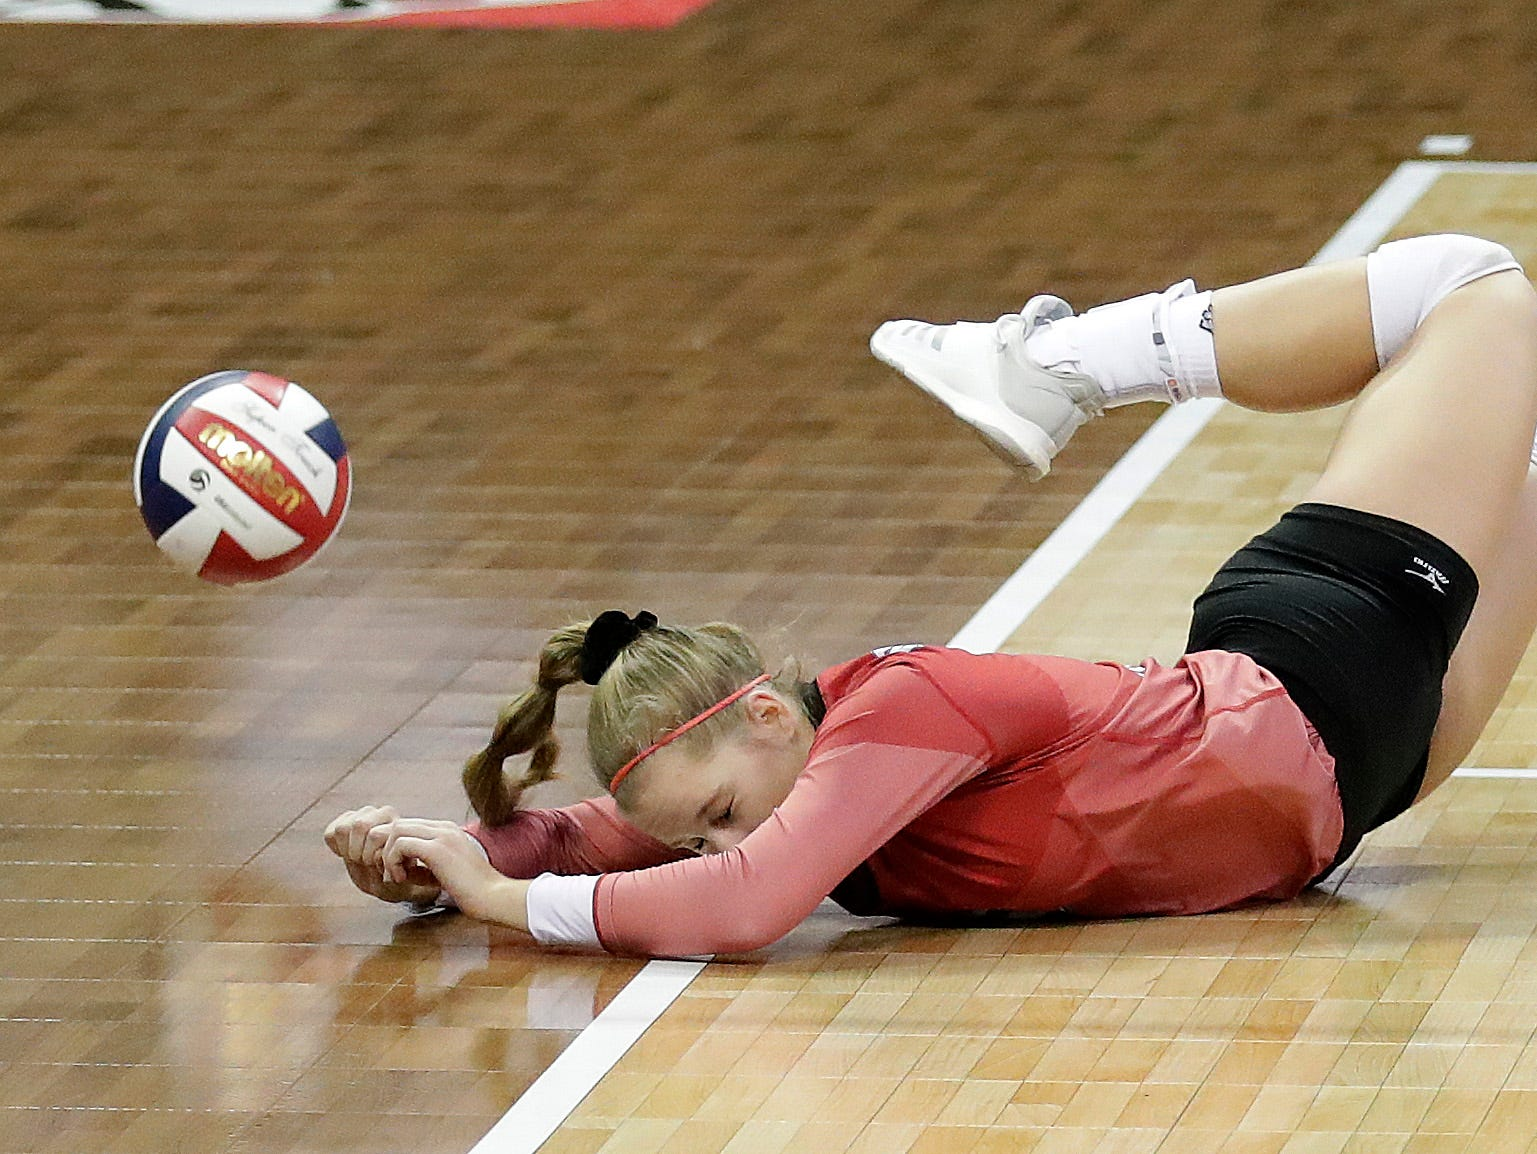 Newman Catholic's Stevie Samuels dives for a ball against Catholic Central during the WIAA Girls State Volleyball Tournament Friday, November 2, 2018 at the Resch Center in Ashwaubenon, Wis.